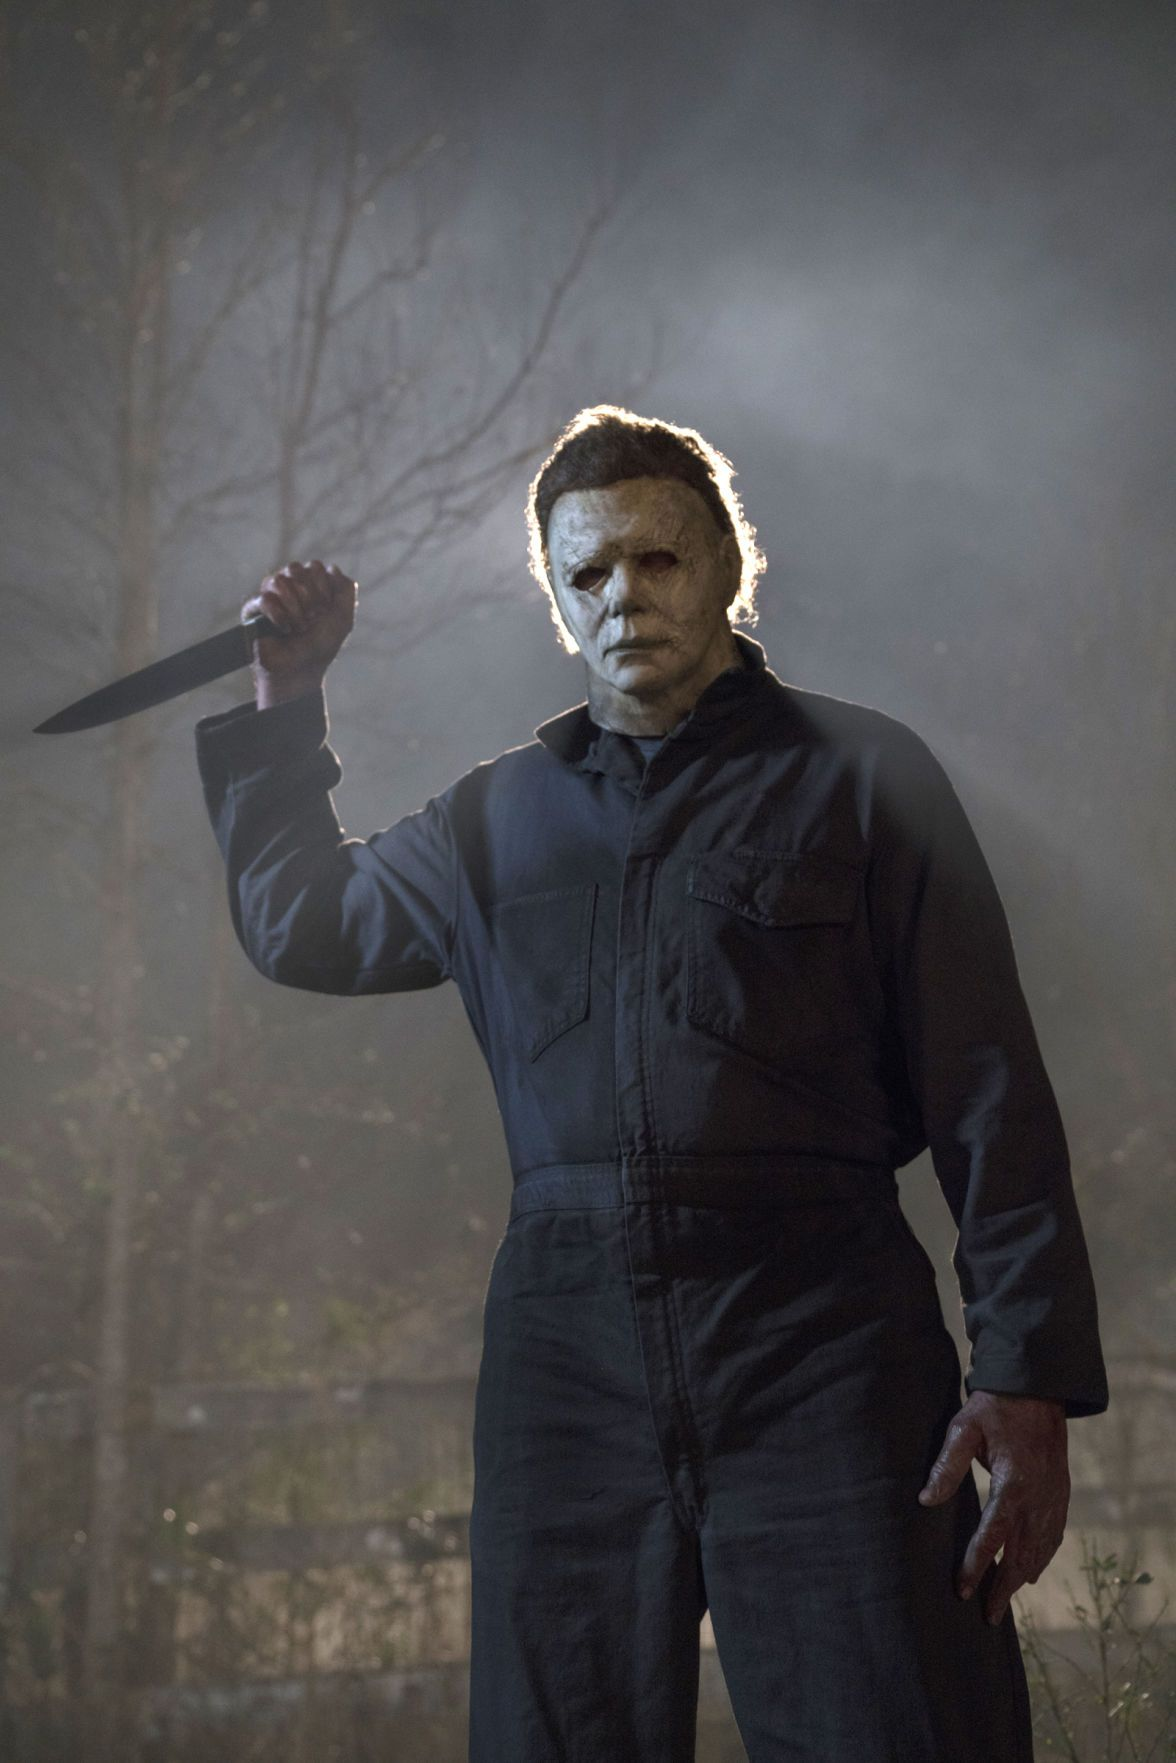 Pin by Mini on 420 in 2020 Halloween film, Michael myers